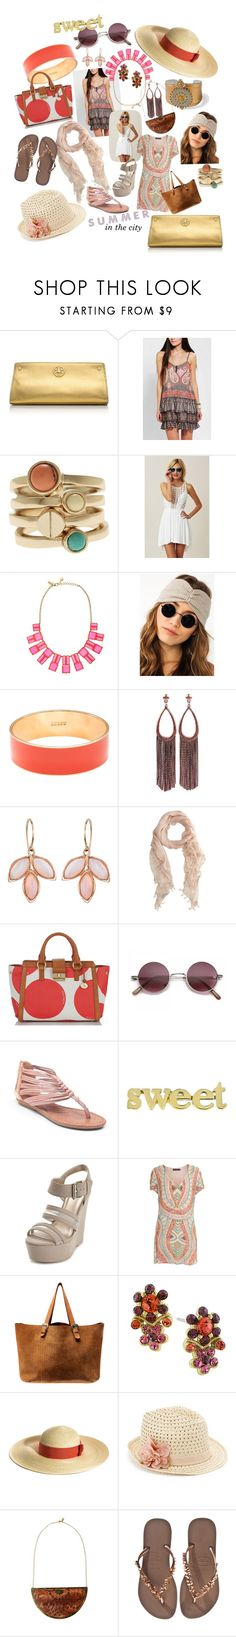 """""""sweet summer in the city, boho style"""" by sandra-longman ❤ liked on Polyvore featuring Tory Burch, Band of Gypsies, Armani Exchange, Bless'ed Are the Meek, Kate Spade, J.Crew, Adia Kibur, Irene Neuwirth, Mint Velvet and Brahmin"""